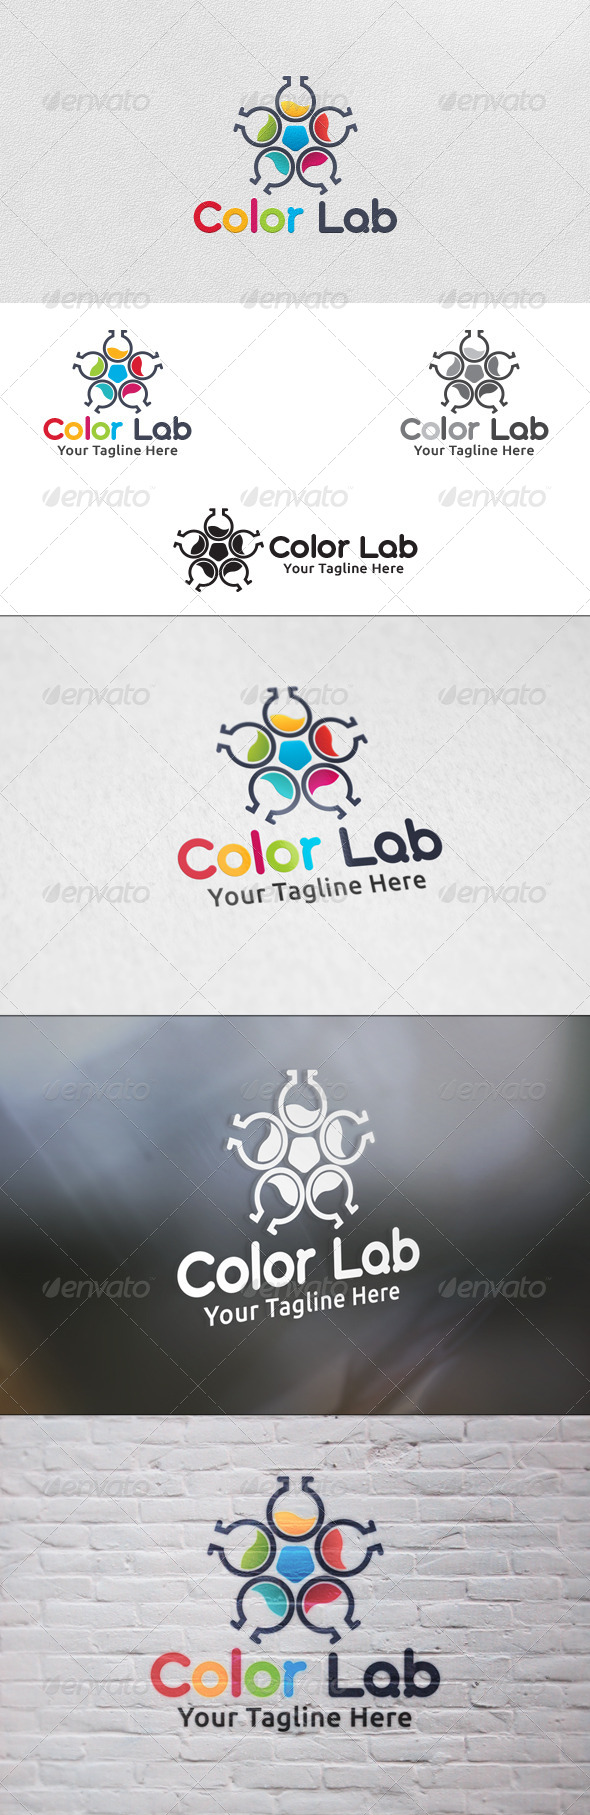 Color Lab Logo Template